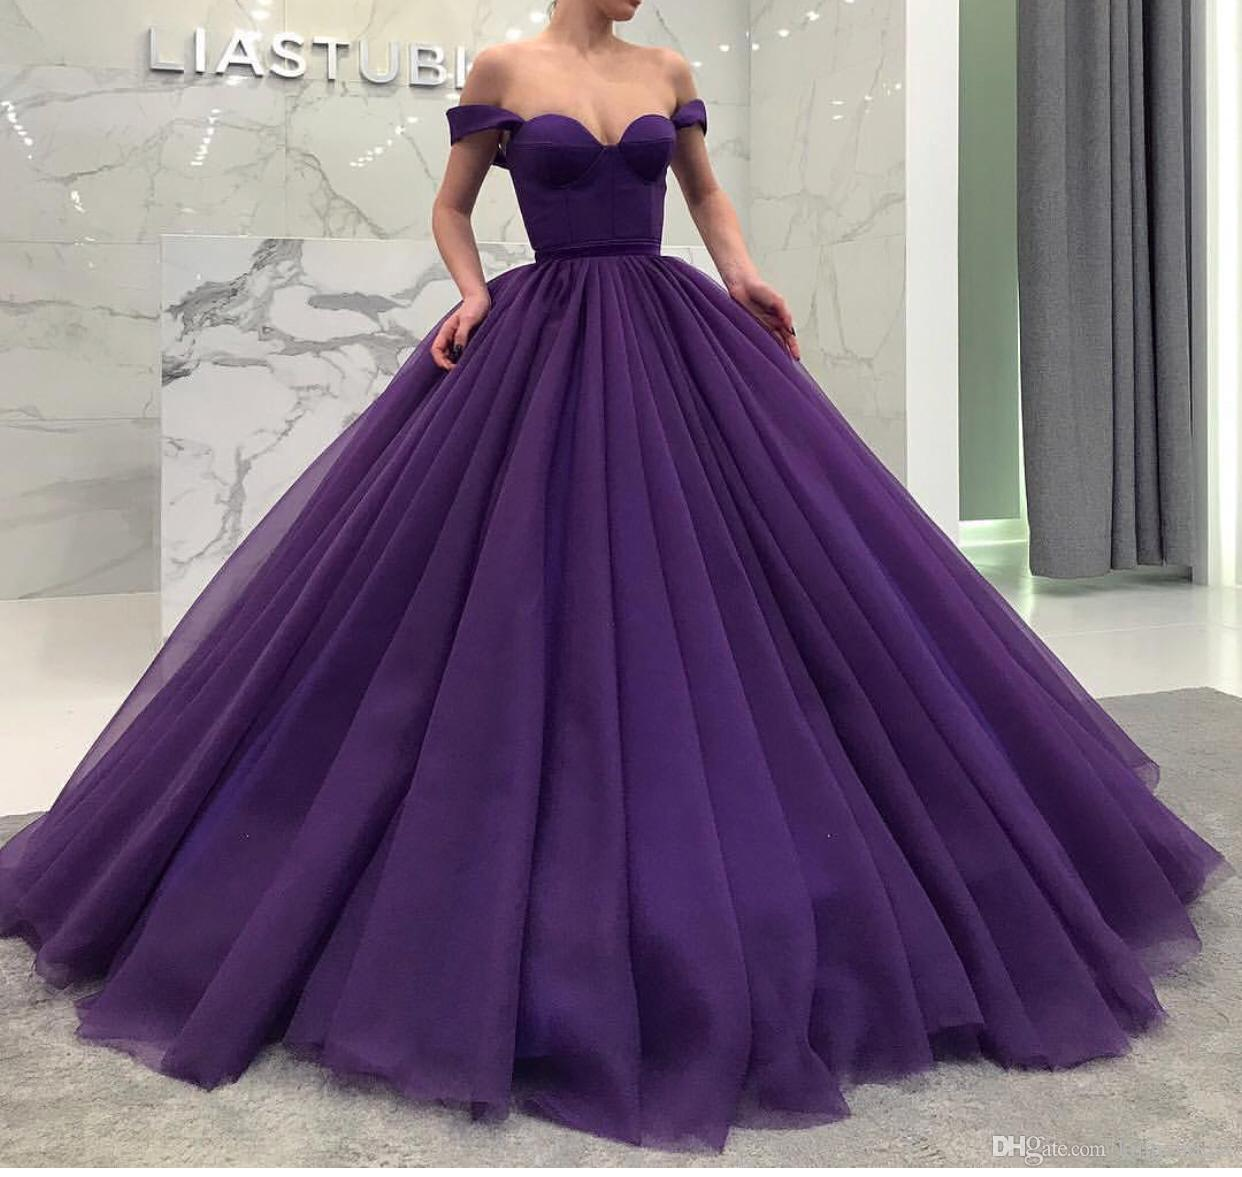 477f031391d Off The Shoulder Prom Dress Ball Gown 2019 Purple Princess Tulle ...